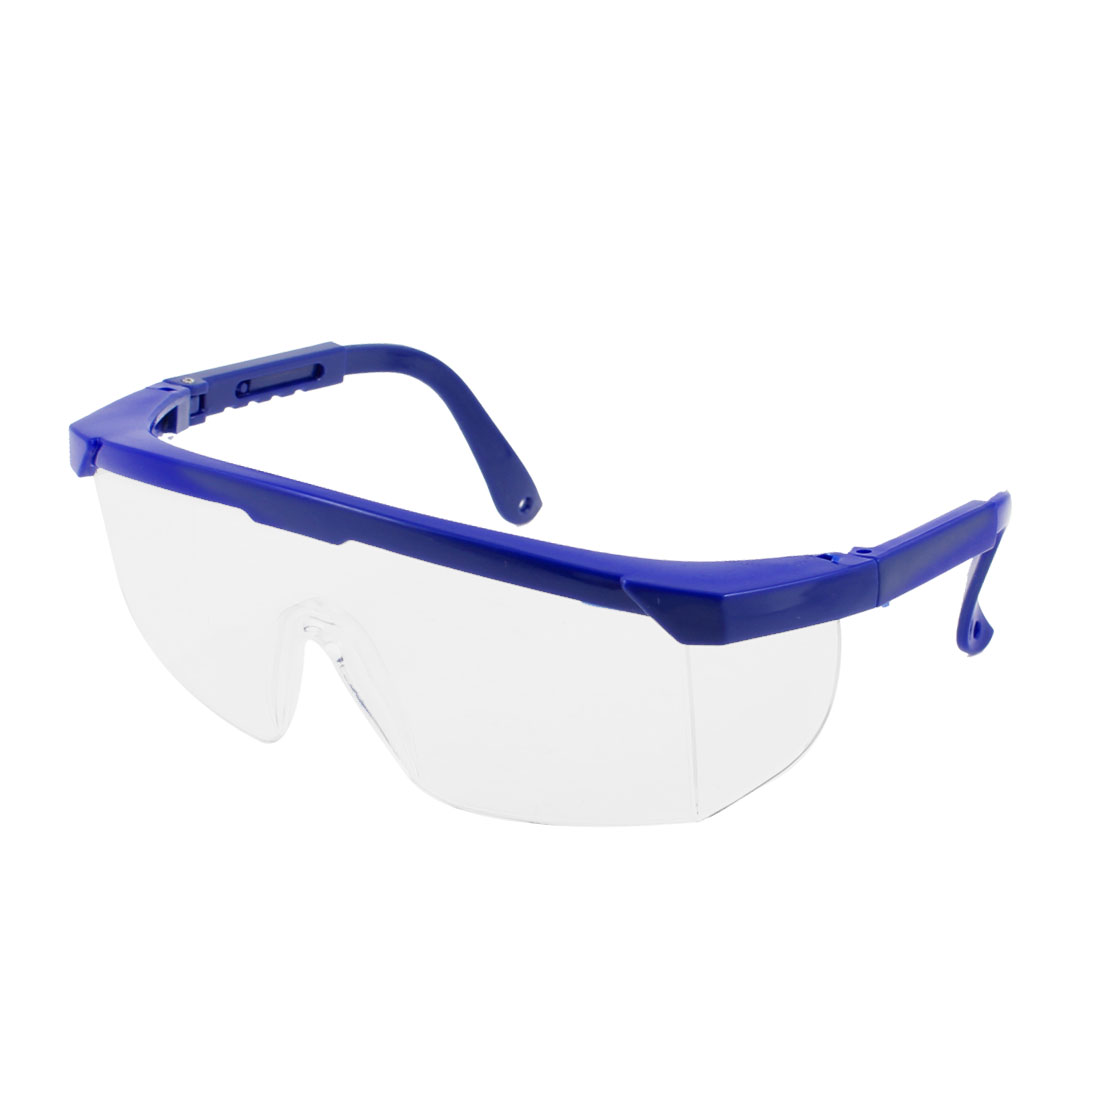 Navy Blue Adjustable Arms Plastic Clear Lens Protective Glasses Goggles